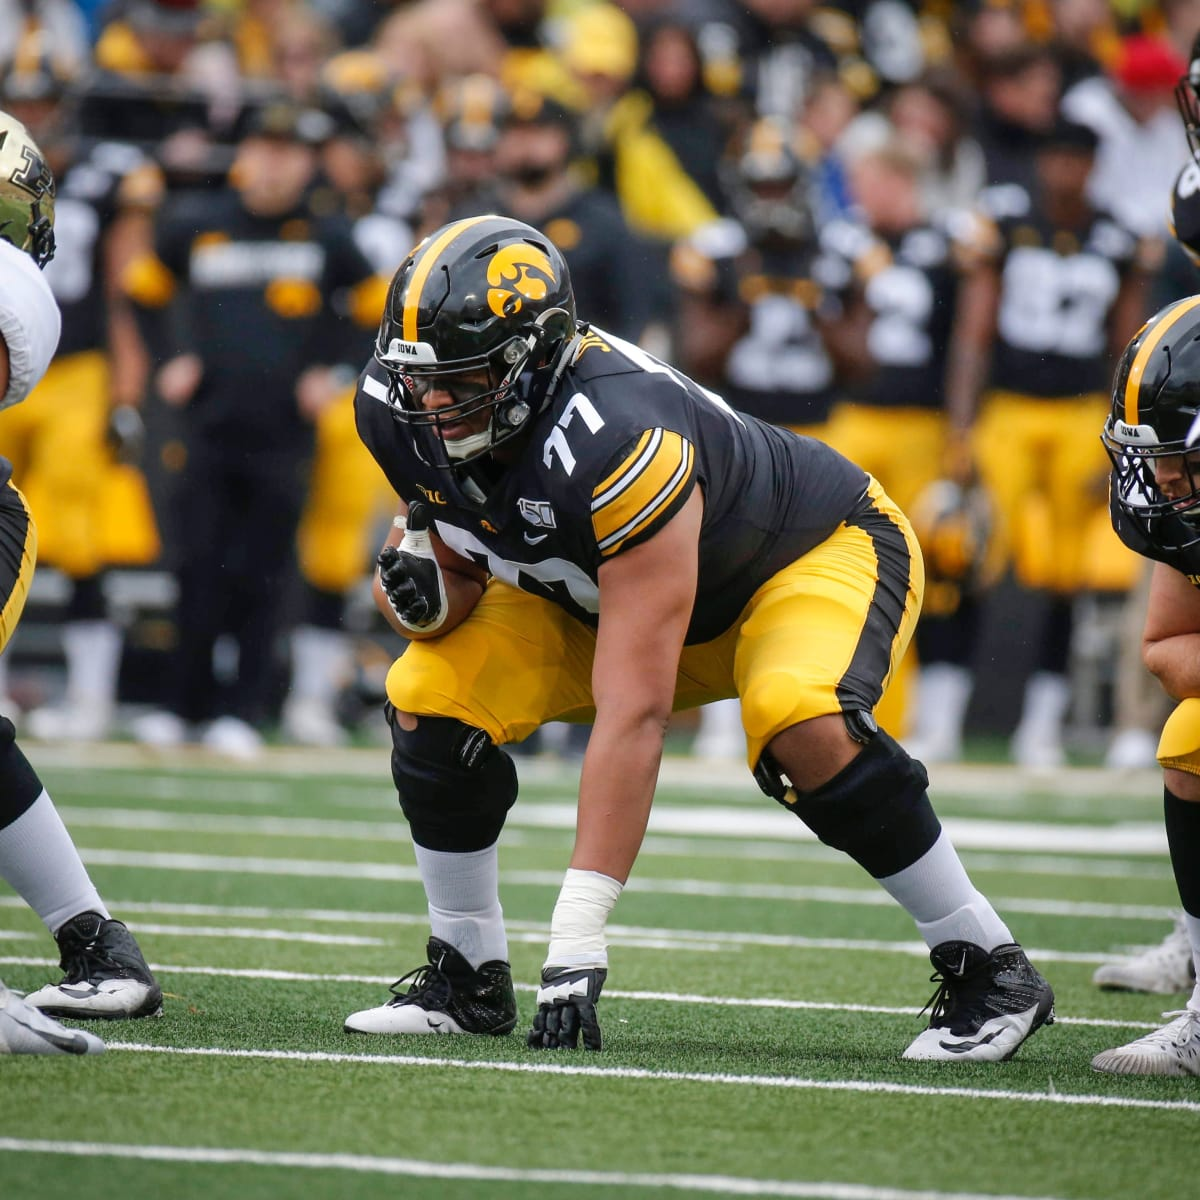 Alaric Jackson - Offensive Tackle Iowa Hawkeyes 2021 NFL Draft Scouting  Report - The NFL Draft Bible on Sports Illustrated: The Leading Authority  on the NFL Draft